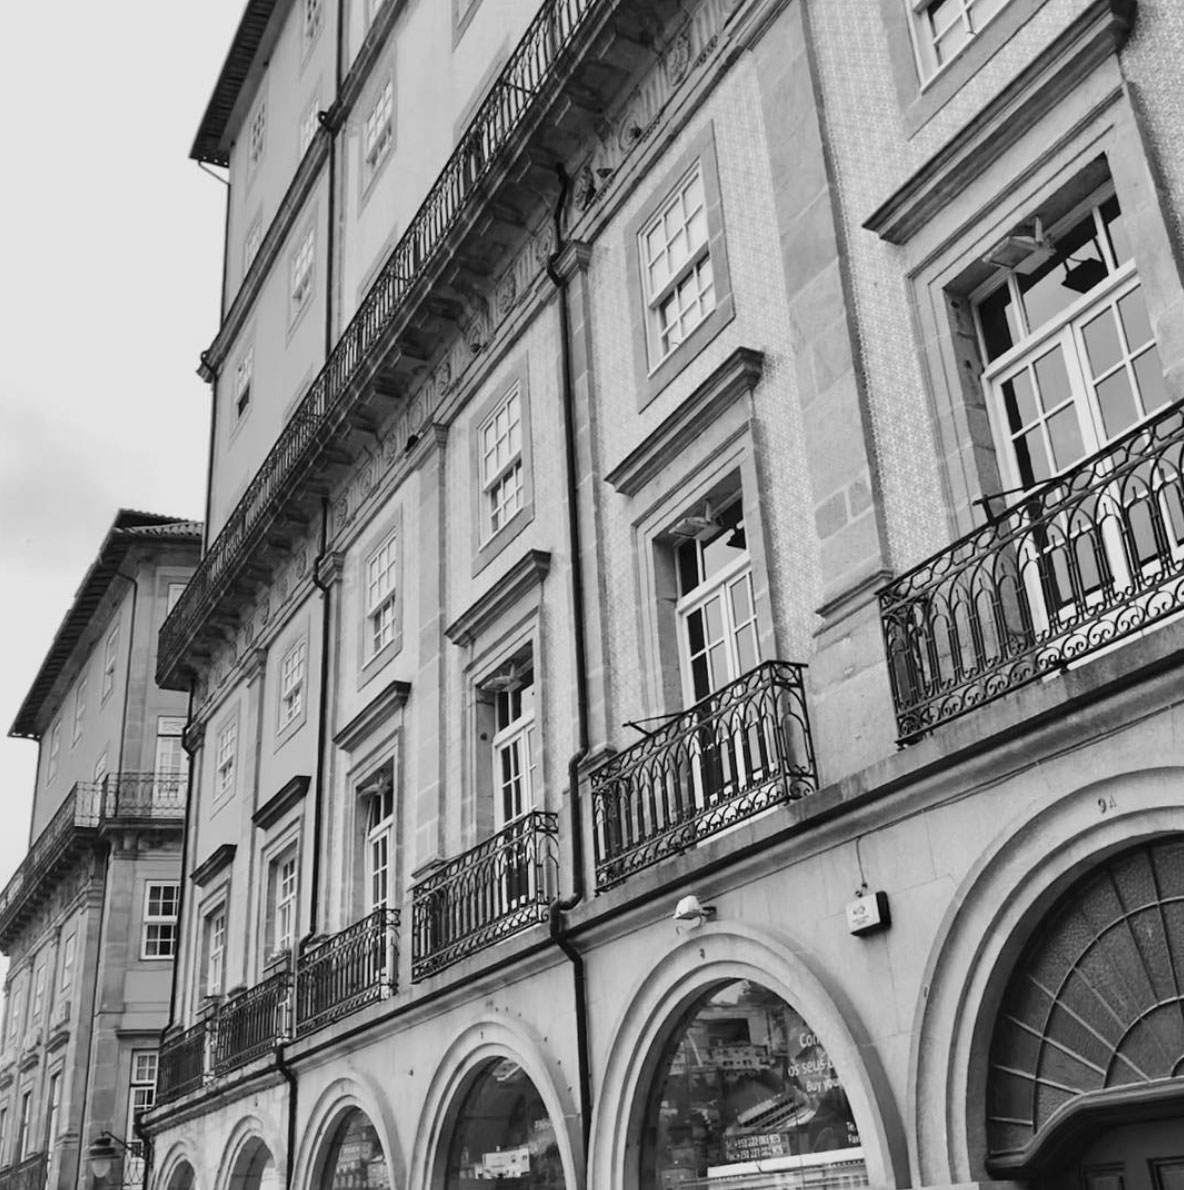 Detail of the buildings in Porto, Portugal